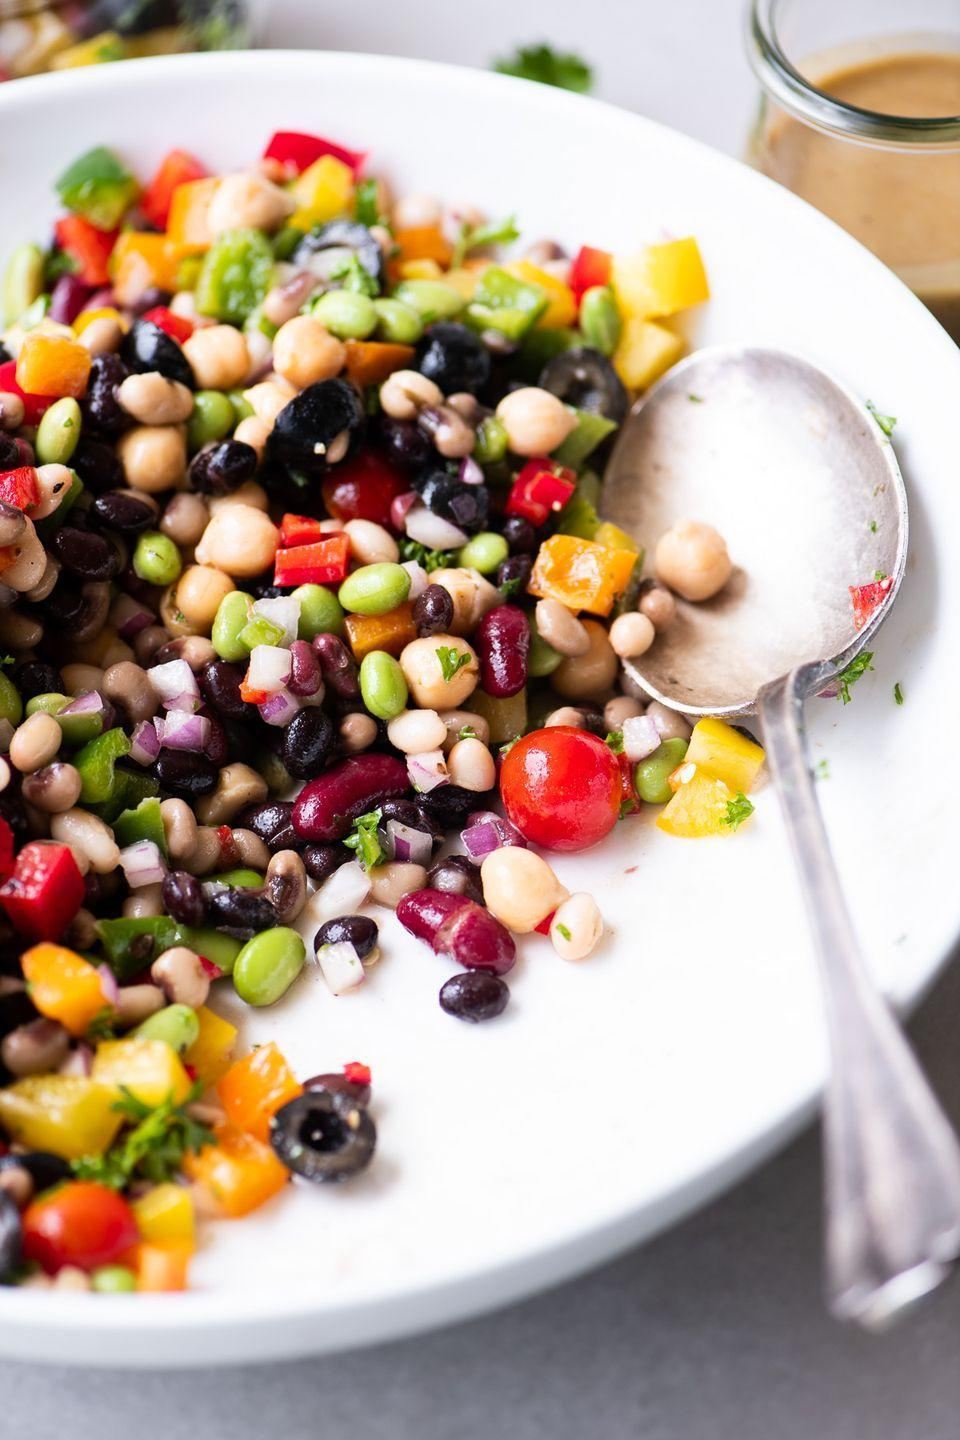 """<p>Get the <a href=""""https://theviewfromgreatisland.com/rainbow-bean-salad-with-sweet-and-sour-dressing-recipe/"""" rel=""""nofollow noopener"""" target=""""_blank"""" data-ylk=""""slk:Rainbow Bean Salad"""" class=""""link rapid-noclick-resp"""">Rainbow Bean Salad</a> recipe. </p><p>Recipe from <a href=""""https://theviewfromgreatisland.com/"""" rel=""""nofollow noopener"""" target=""""_blank"""" data-ylk=""""slk:A View From Great Island"""" class=""""link rapid-noclick-resp"""">A View From Great Island</a>.</p>"""